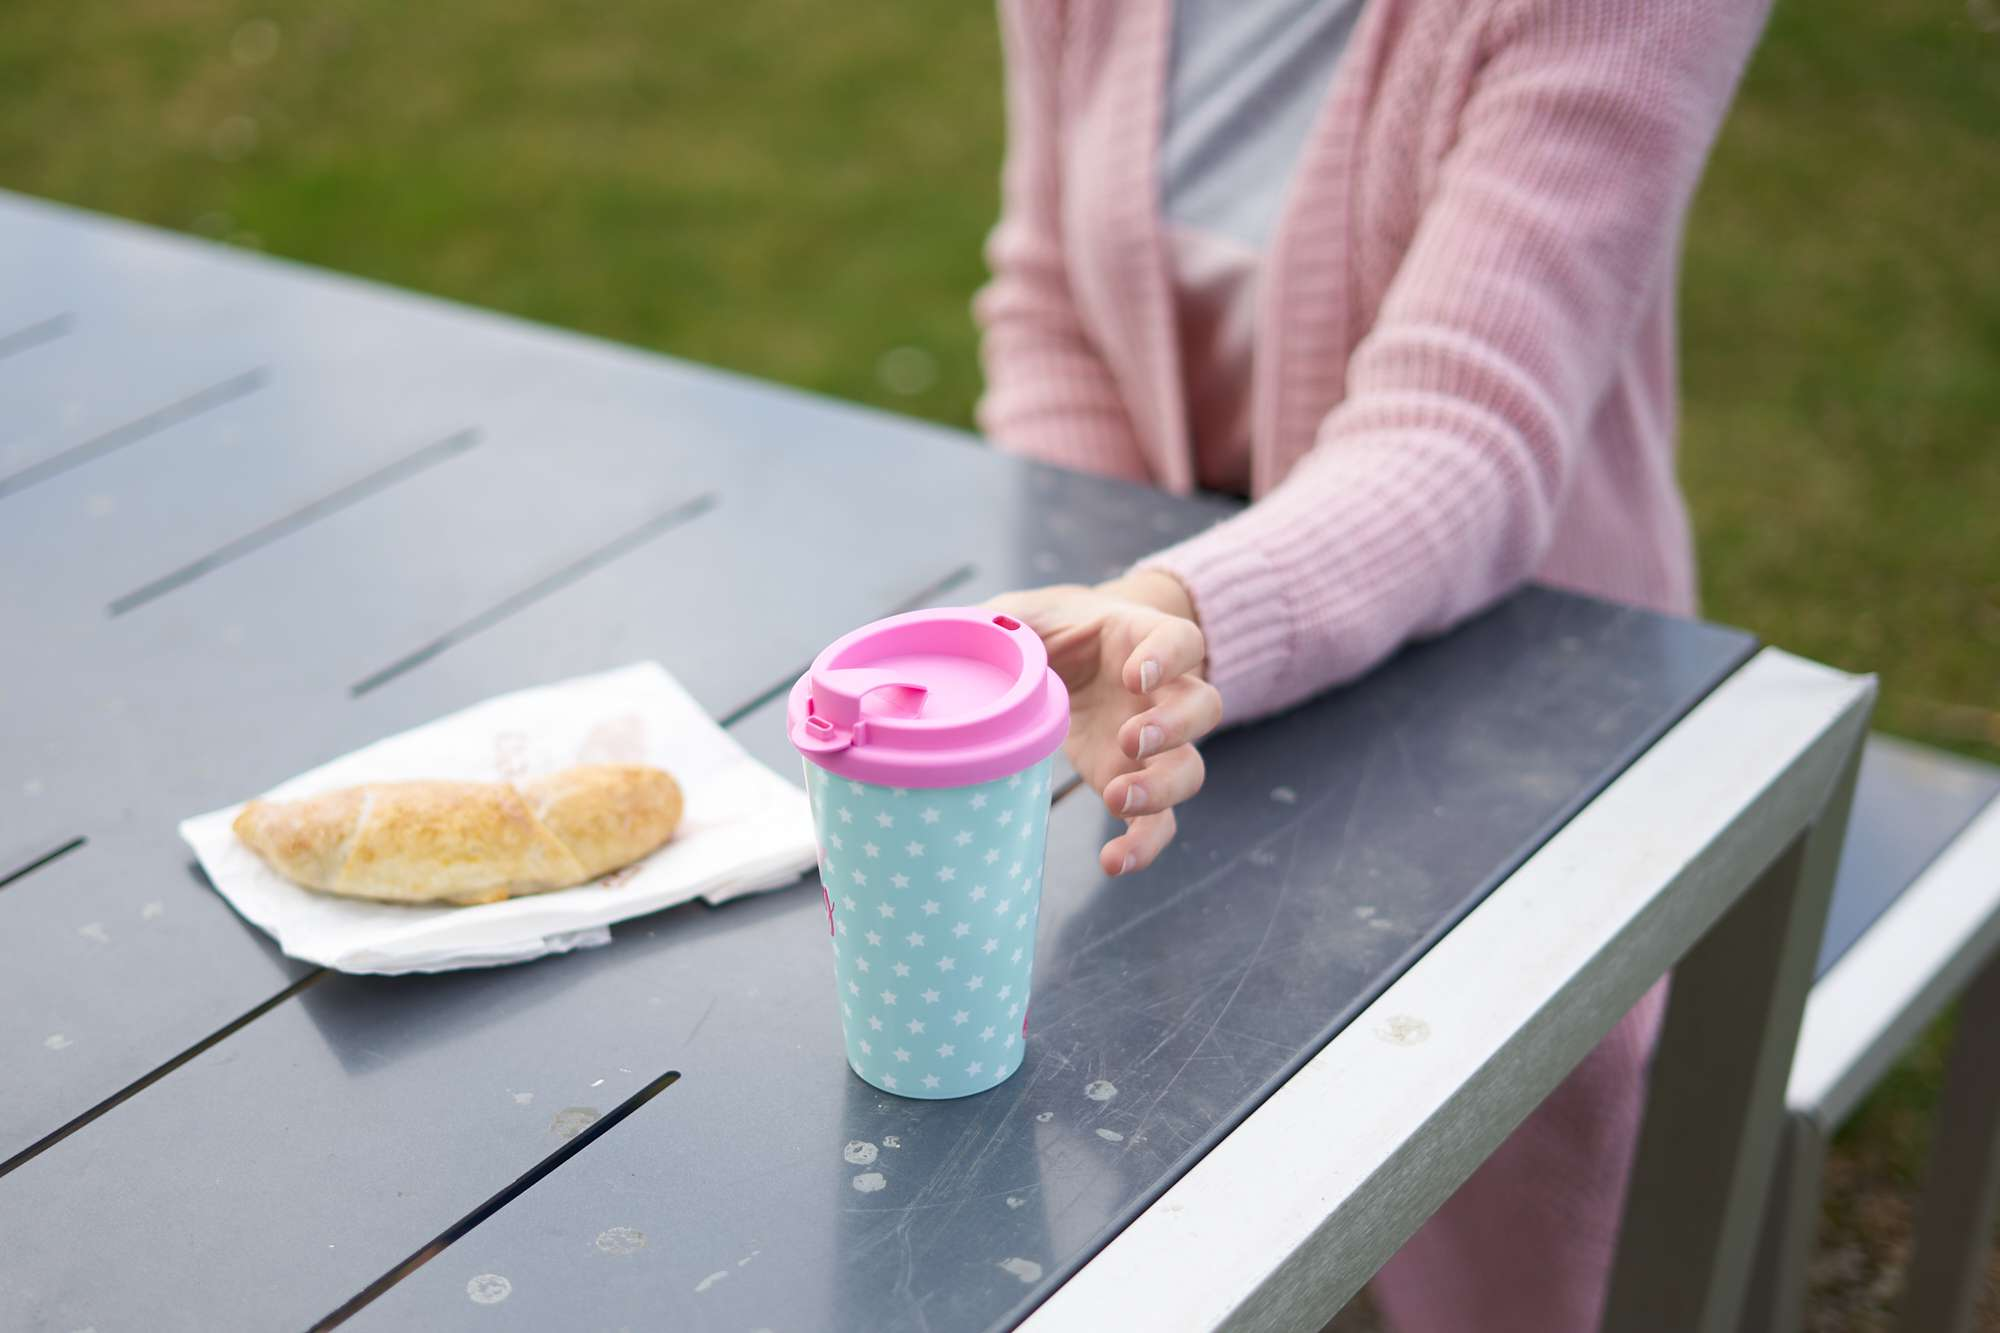 woman in pink cardigan at picnic table reaches for reusable pink and teal coffee cup